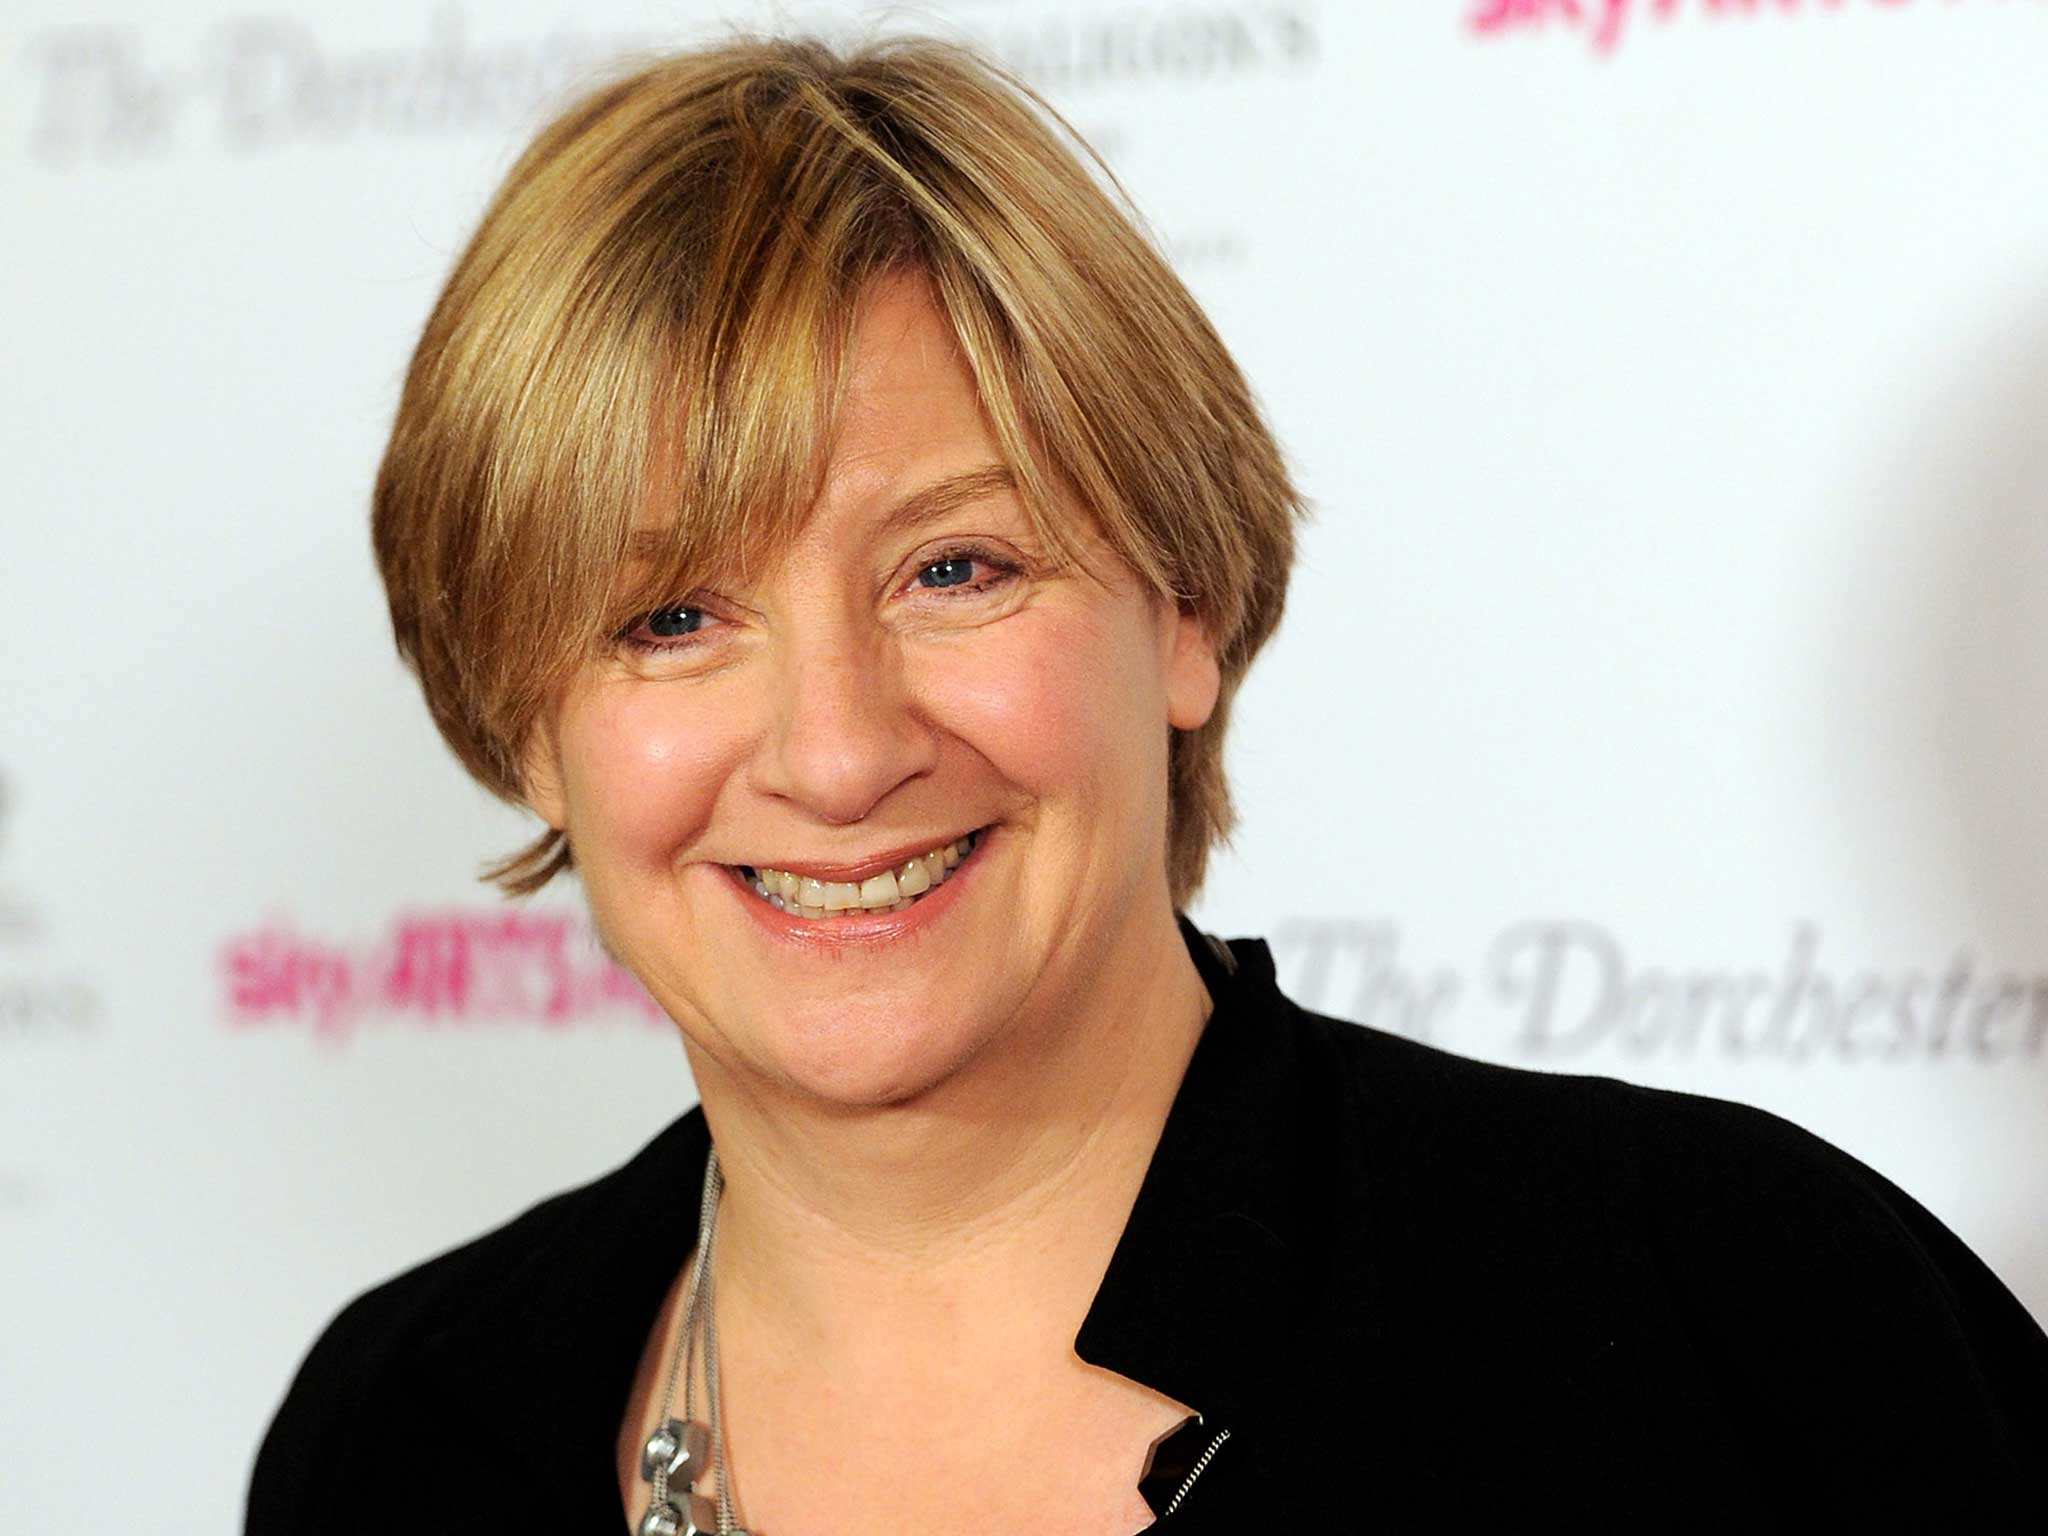 Victoria Wood Dead Twelve Of Her Most Witty Astute And Discerning Quotes The Independent The Independent